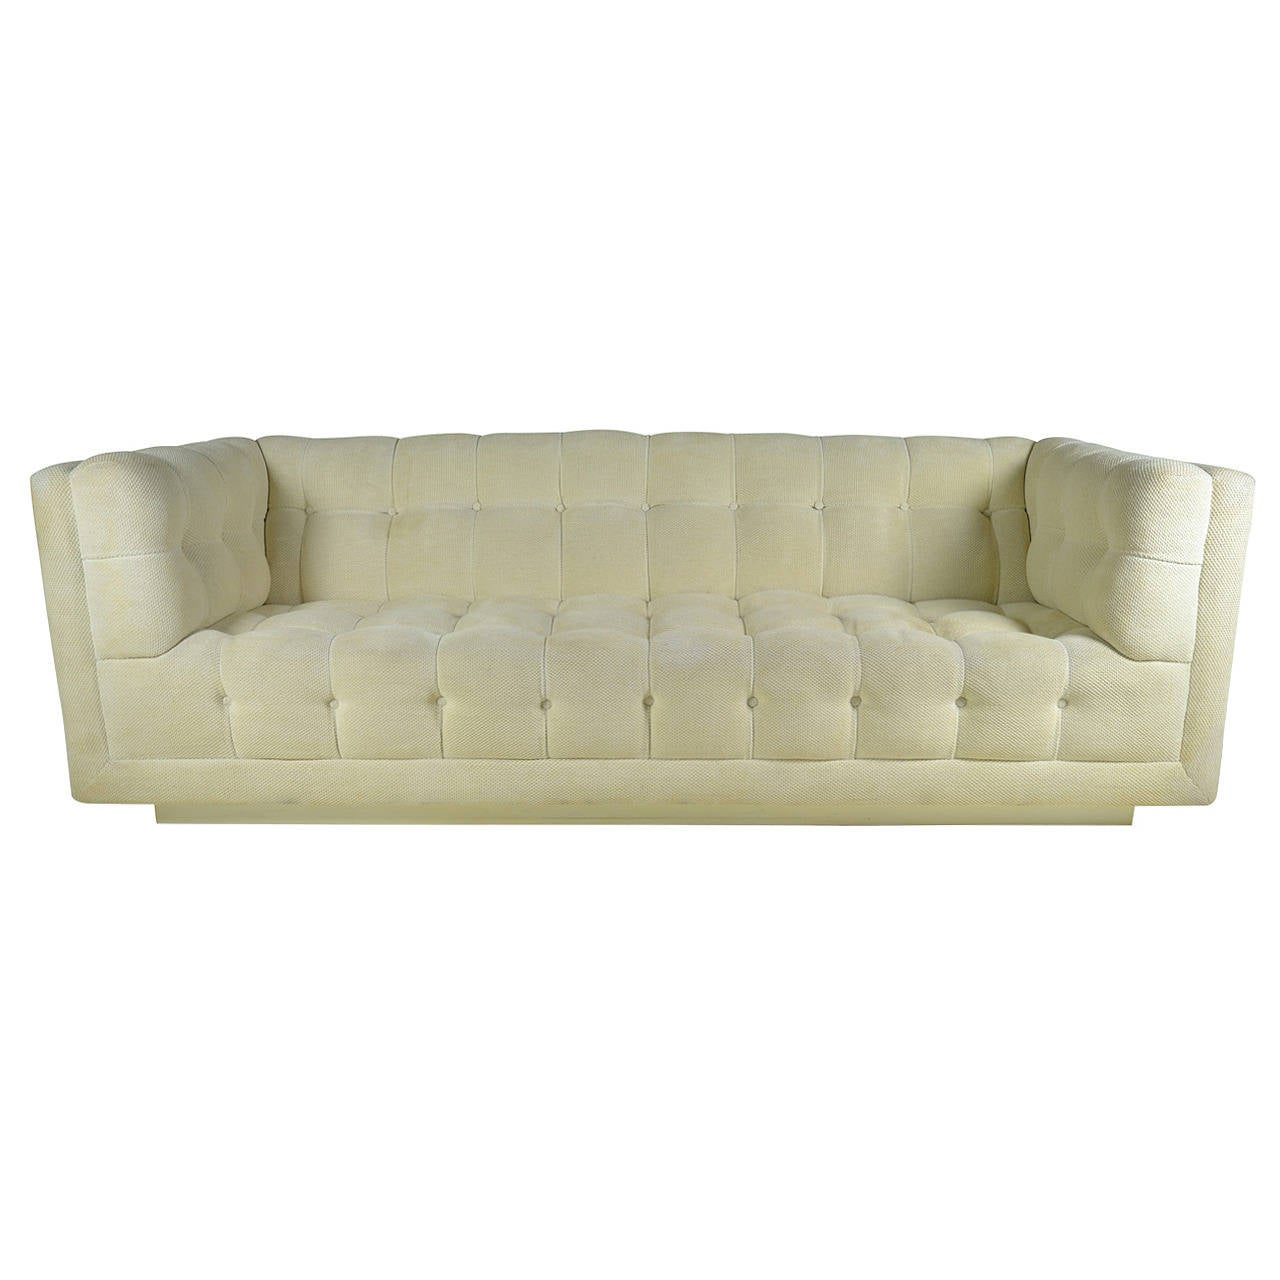 Chesterfield sofa modern  Modern Chesterfield Sofa, circa 1970 For Sale at 1stdibs